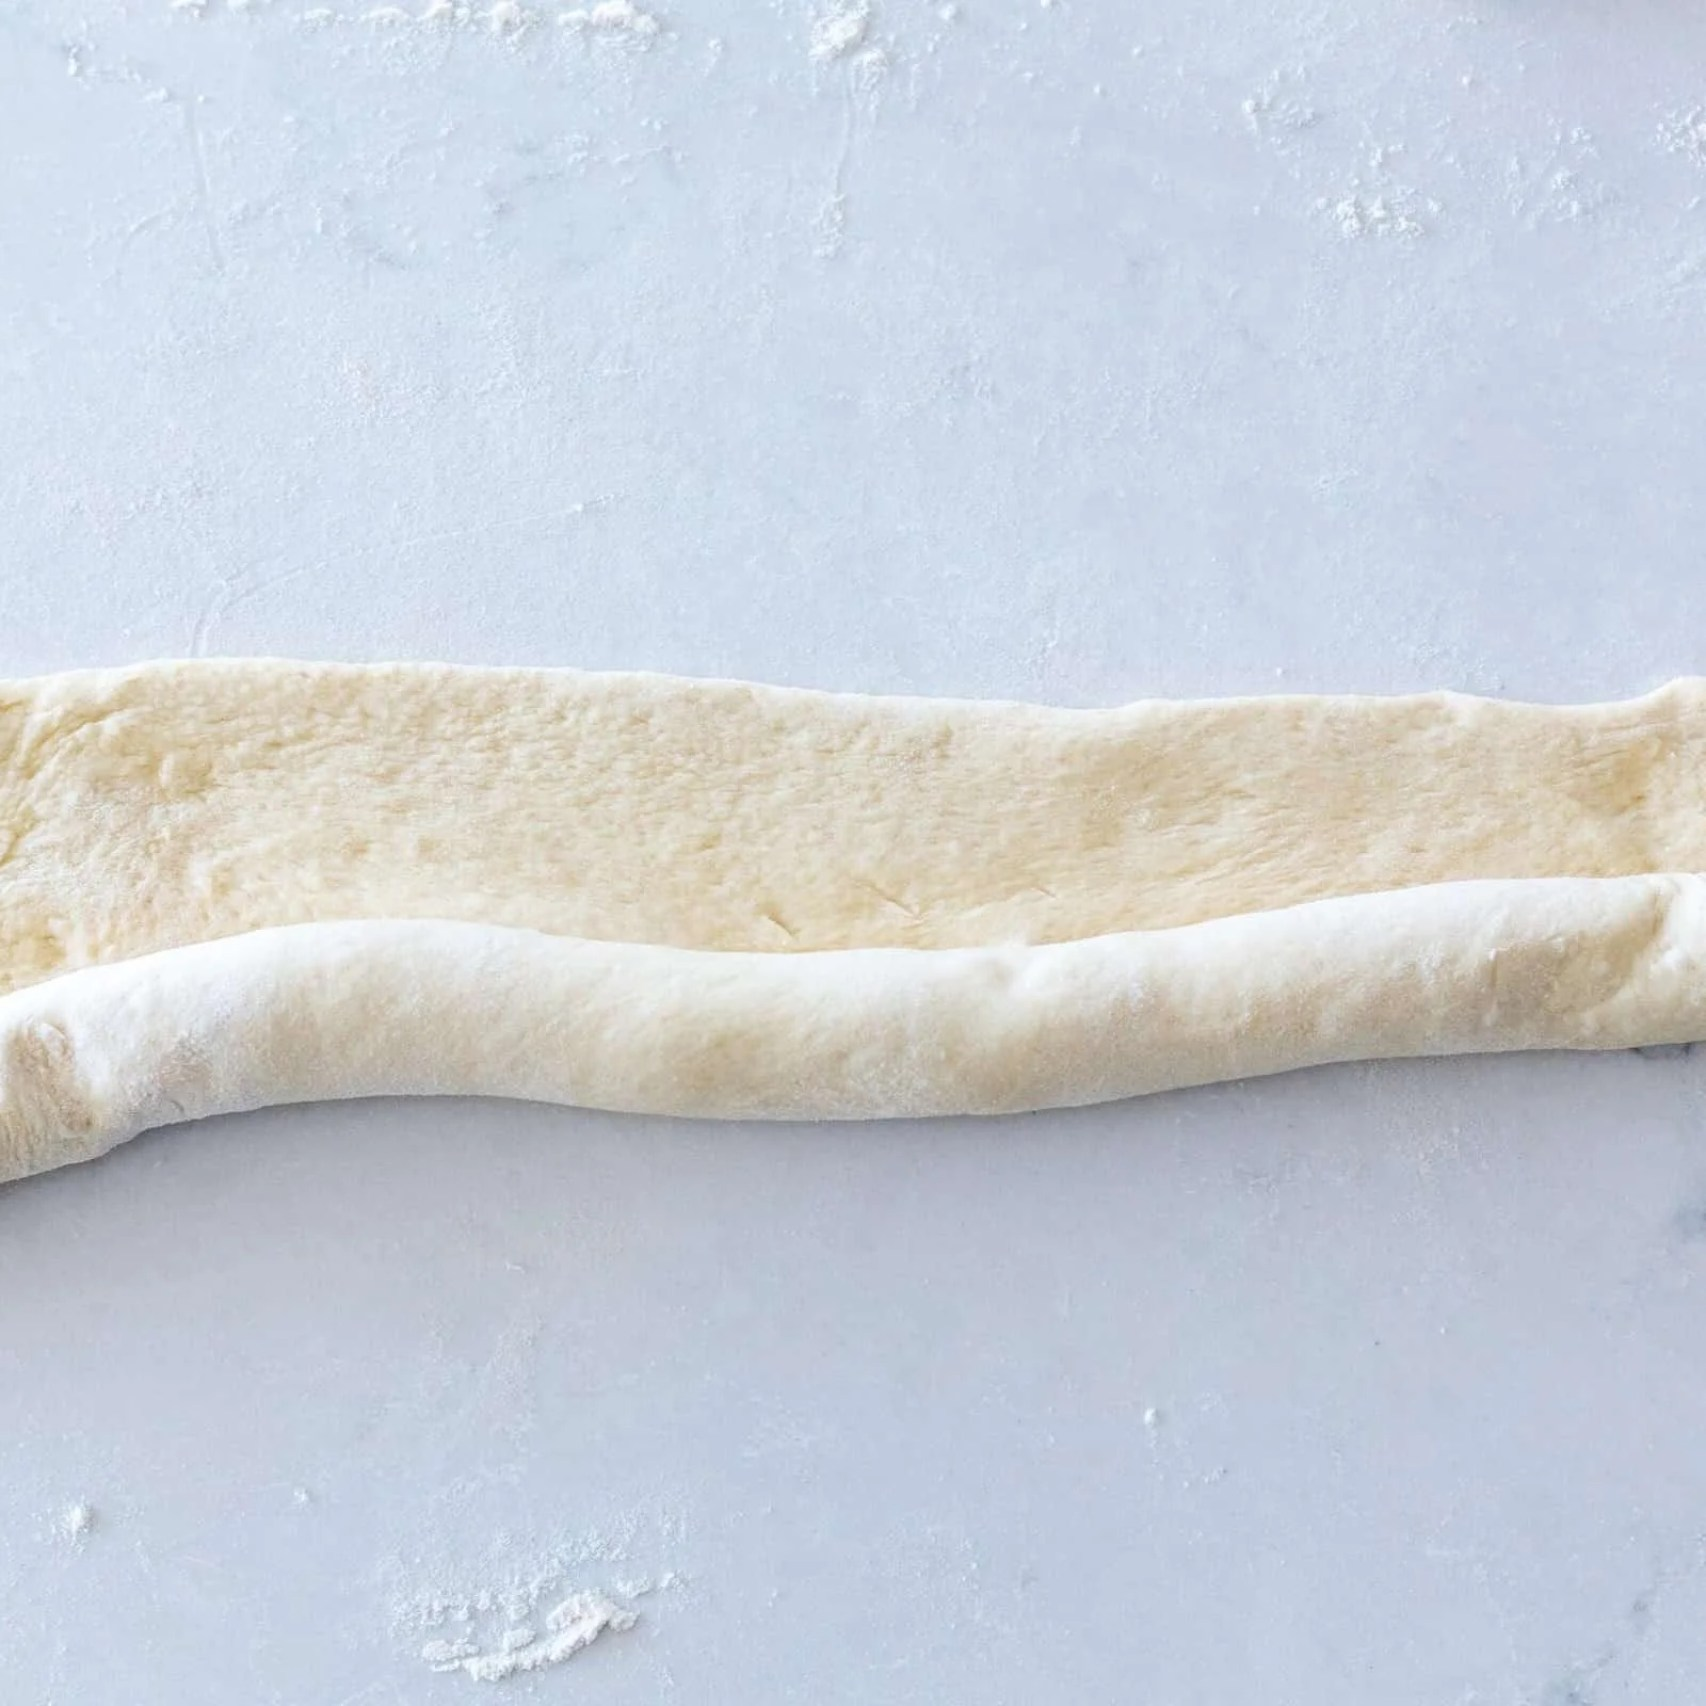 bread dough on a counter rolled up